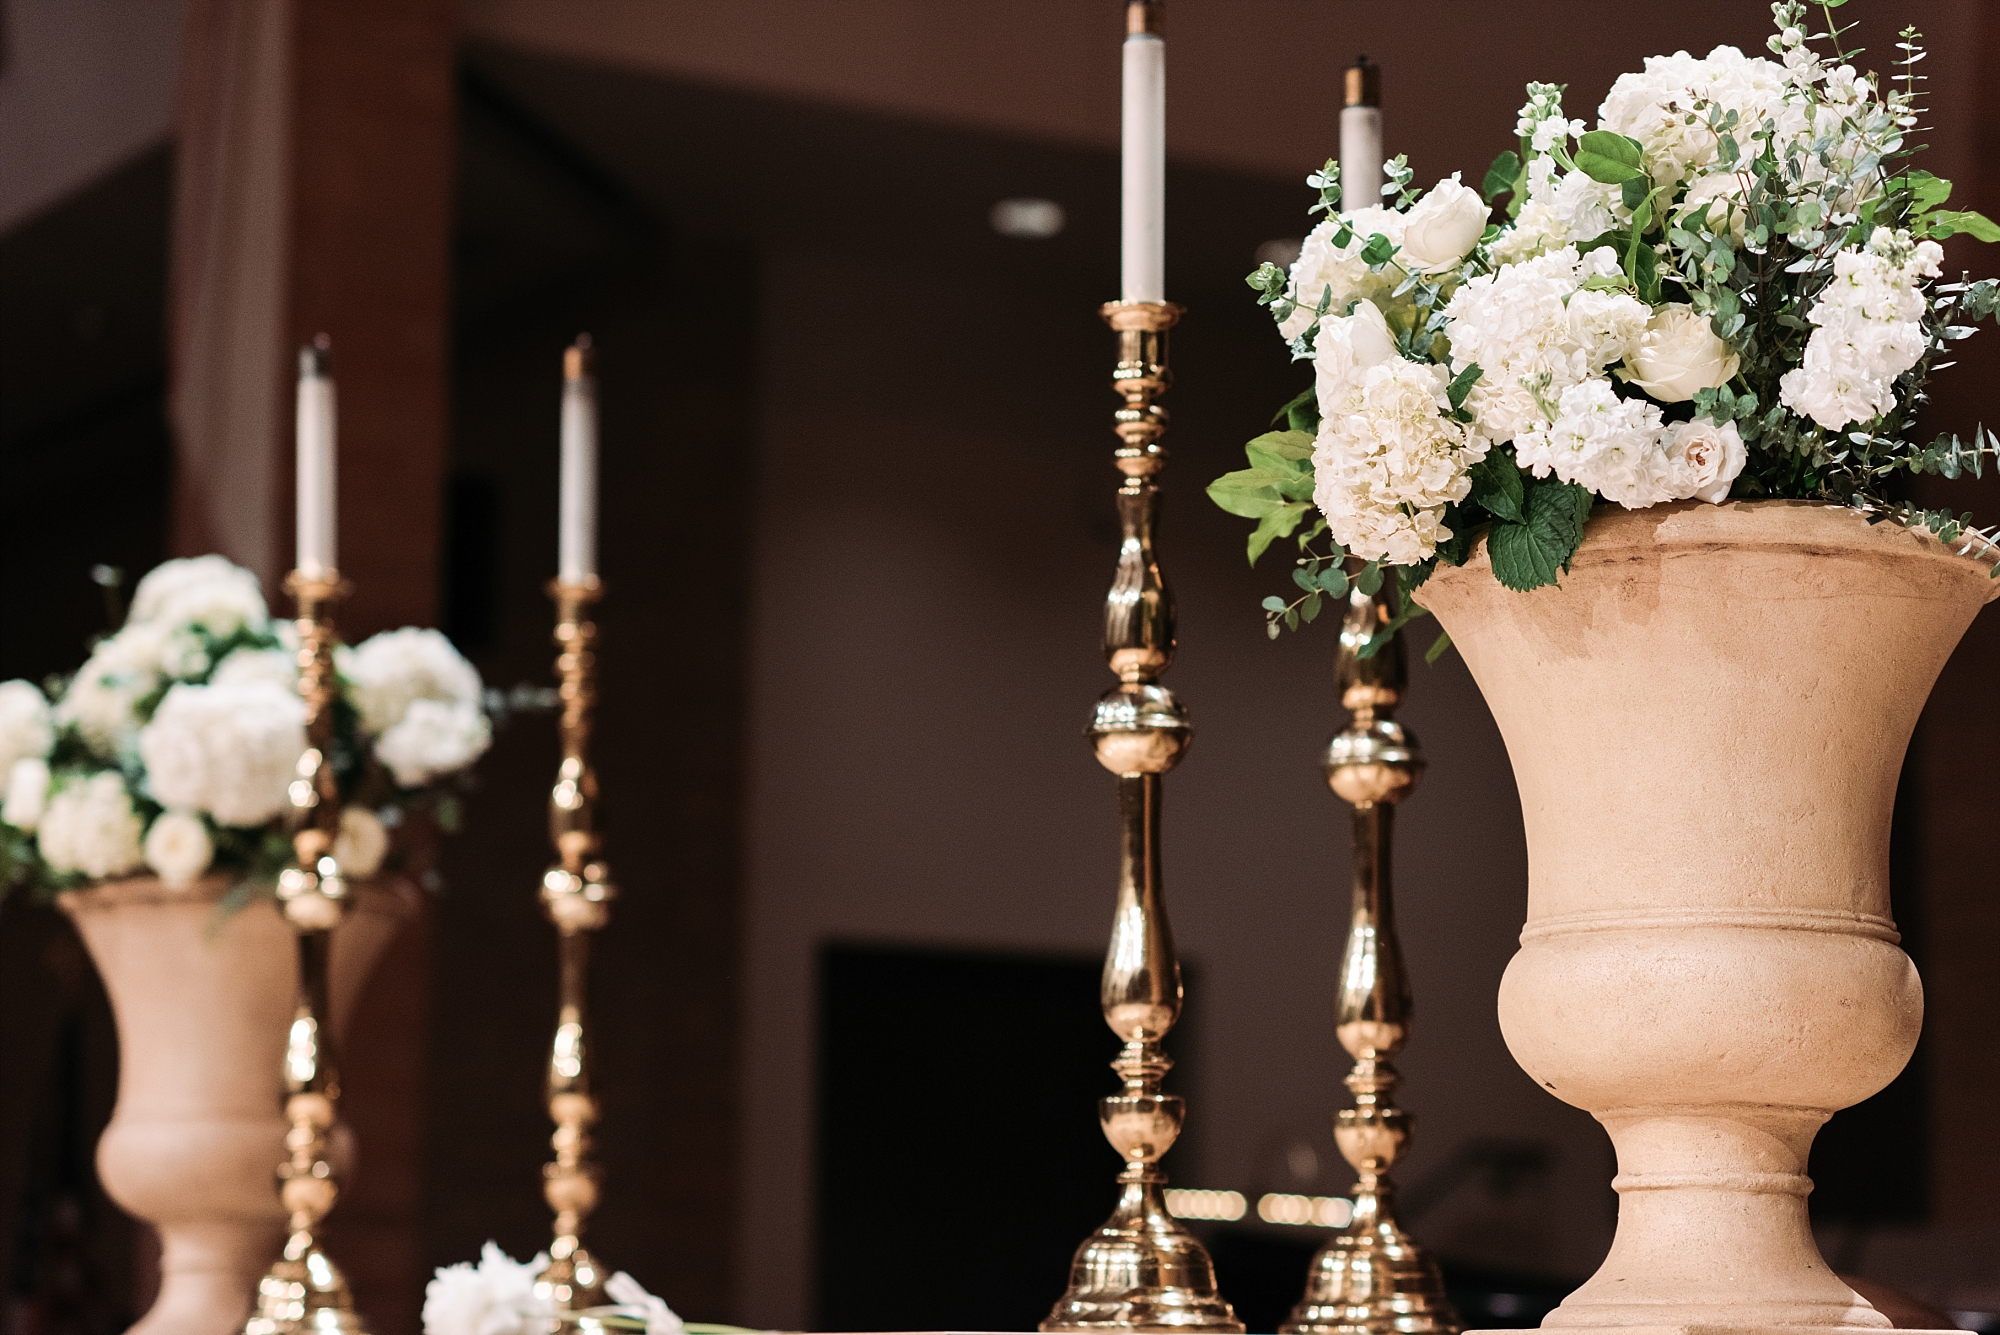 Wedding details photography hydrangeas candle sticks chapel